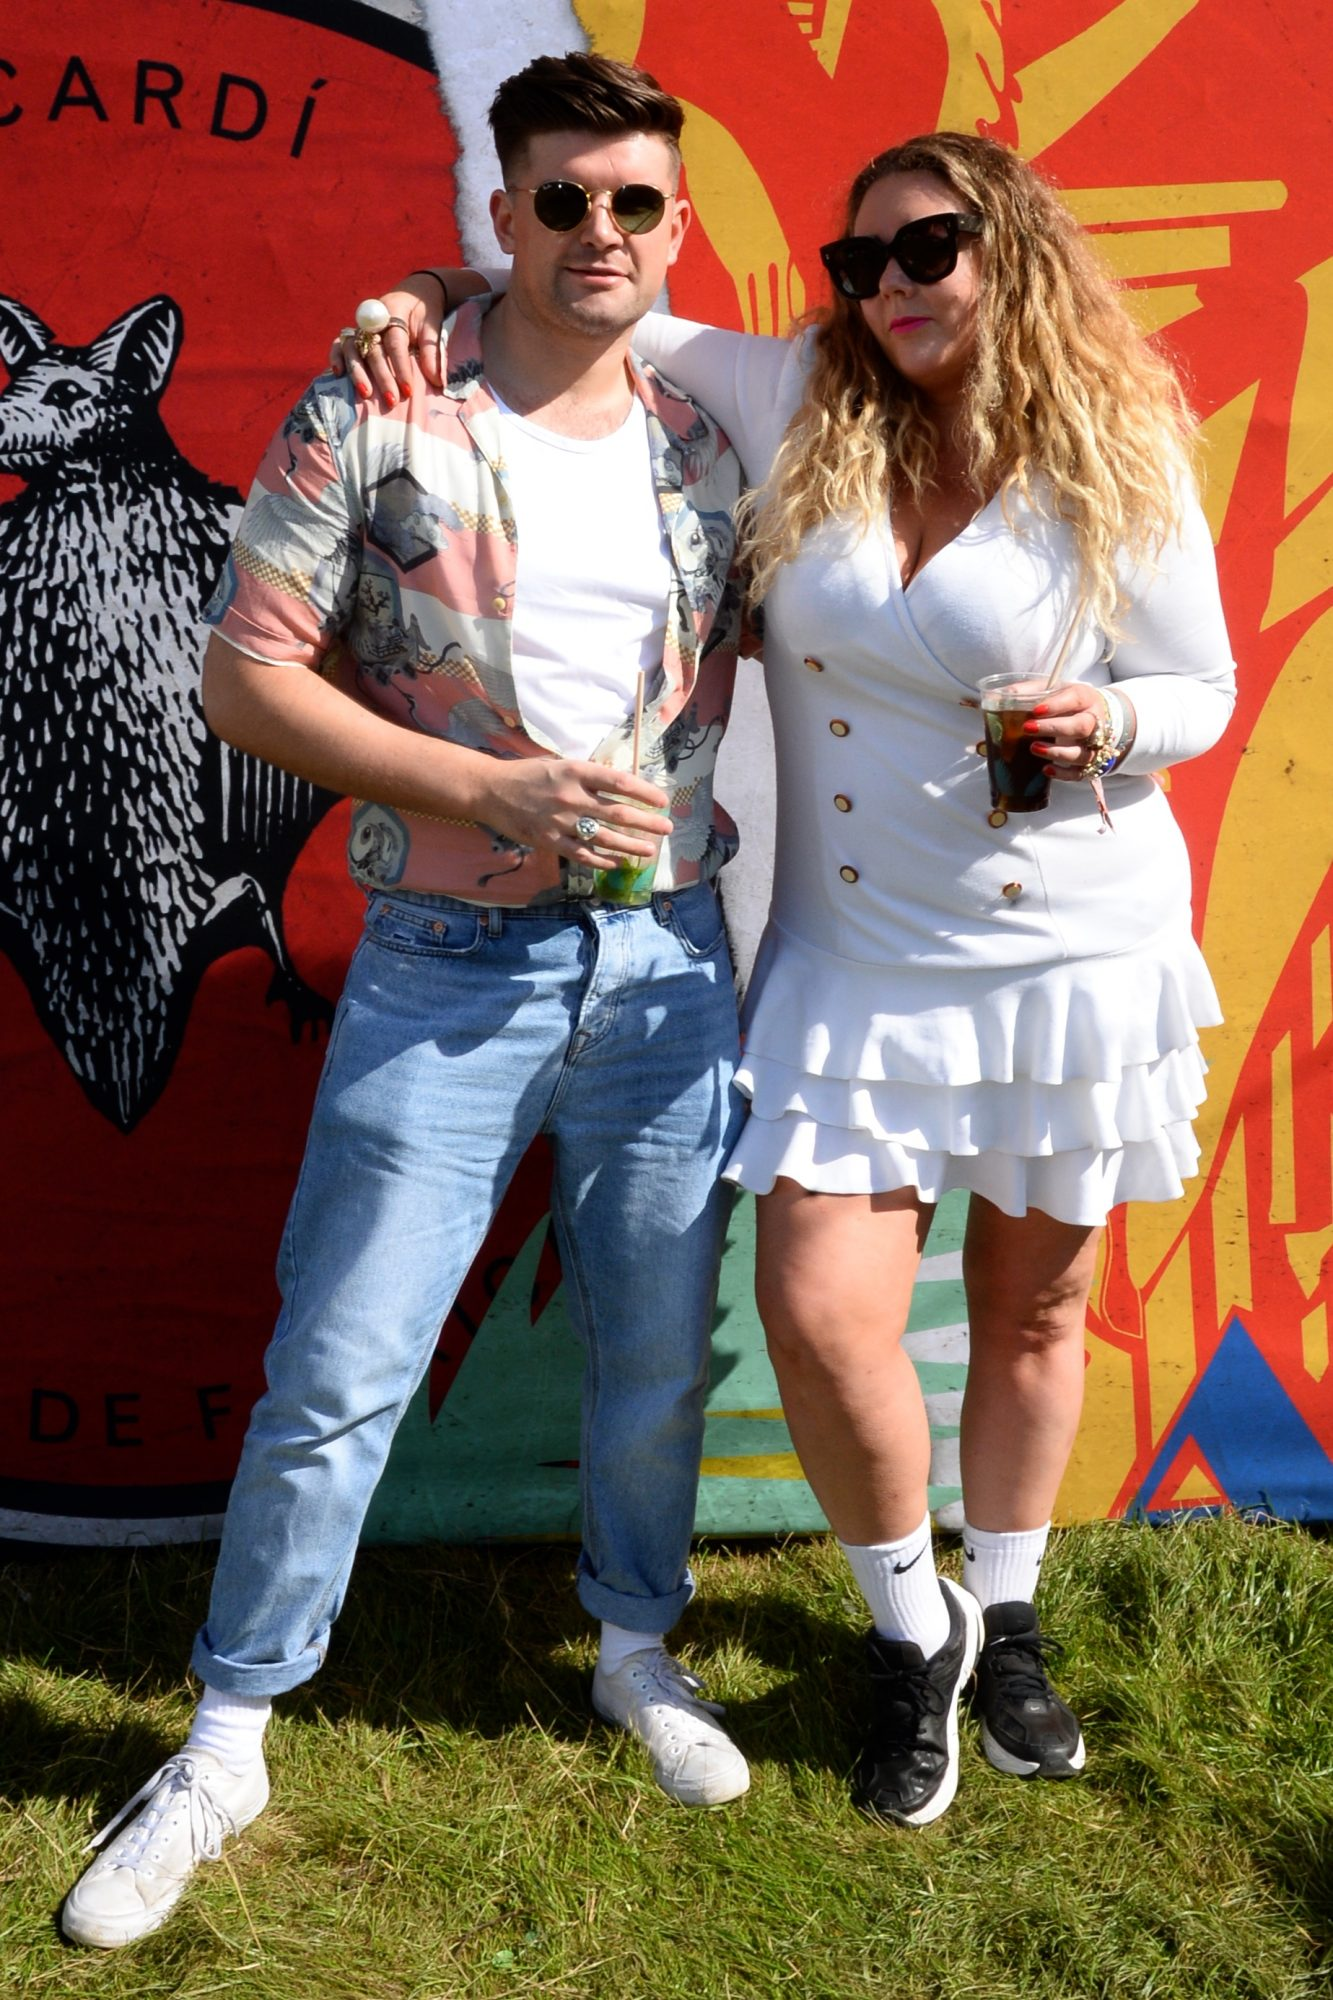 31st August 2019. Mark Oliver and Andrea Horan pictured at Casa Bacardi on day 2 of Electric Picnic. Photo: Justin Farrelly.